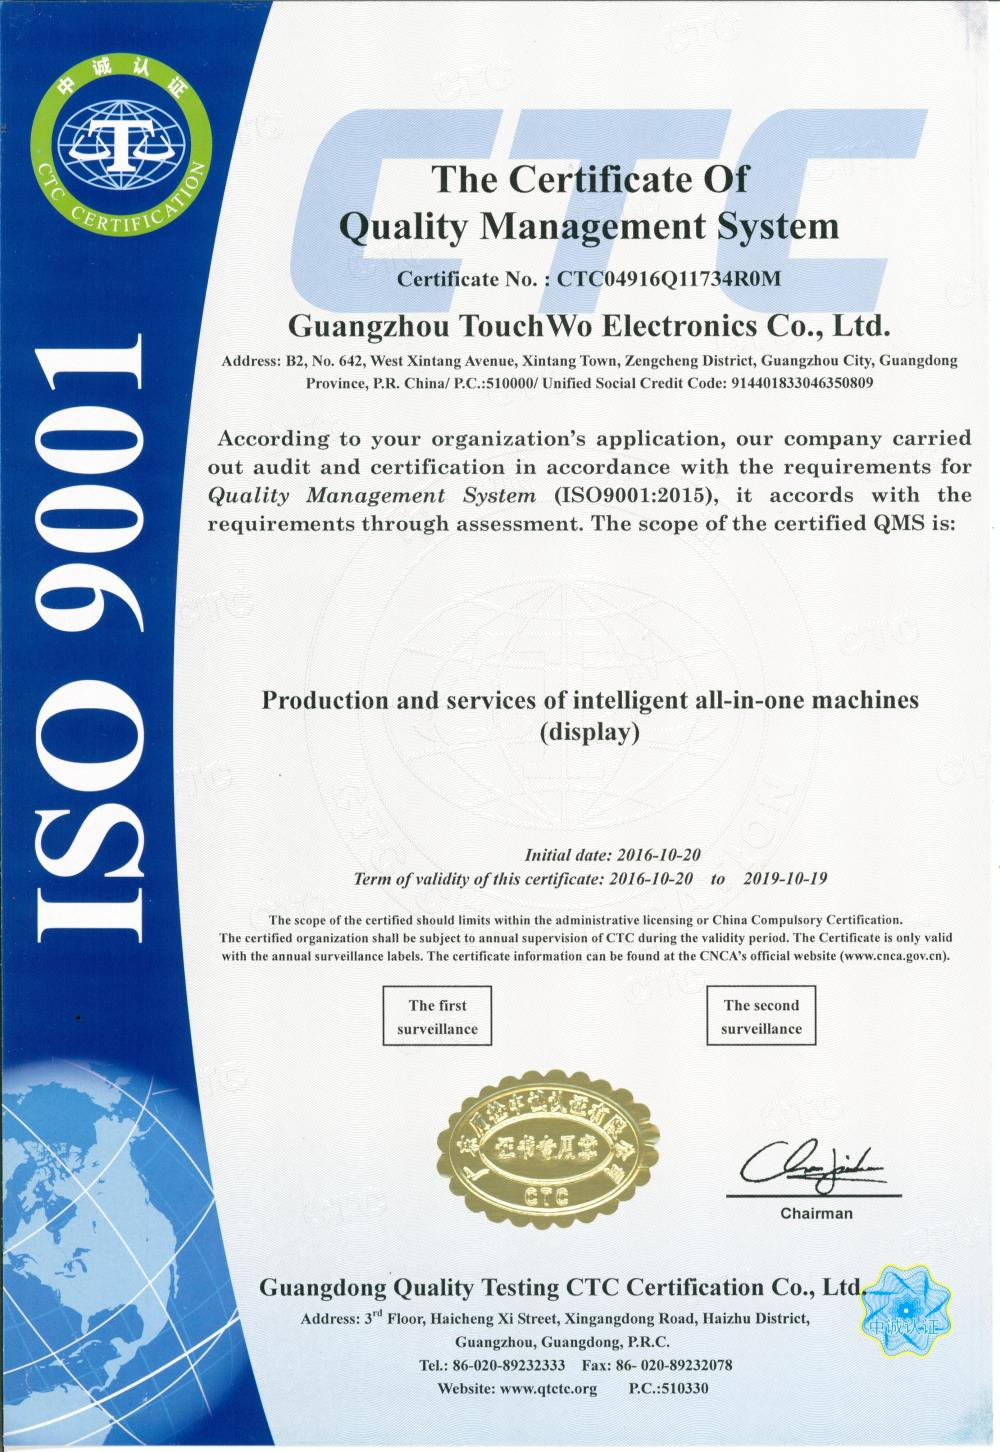 The Certificate of Quality Management System